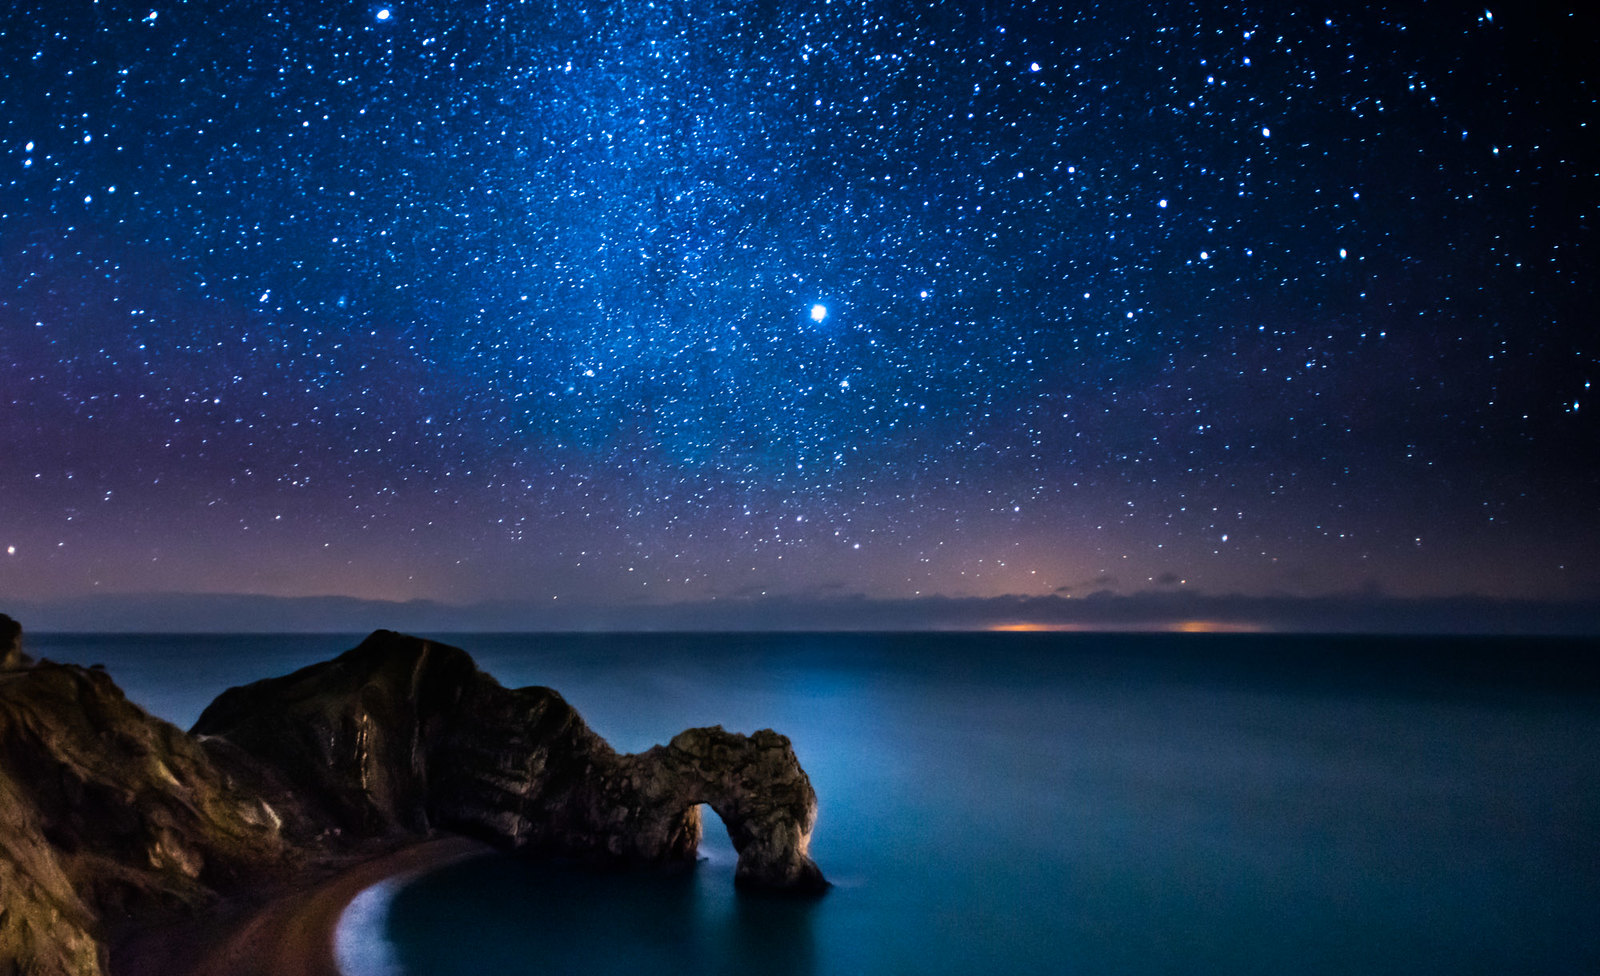 Image result for ocean at night with stars